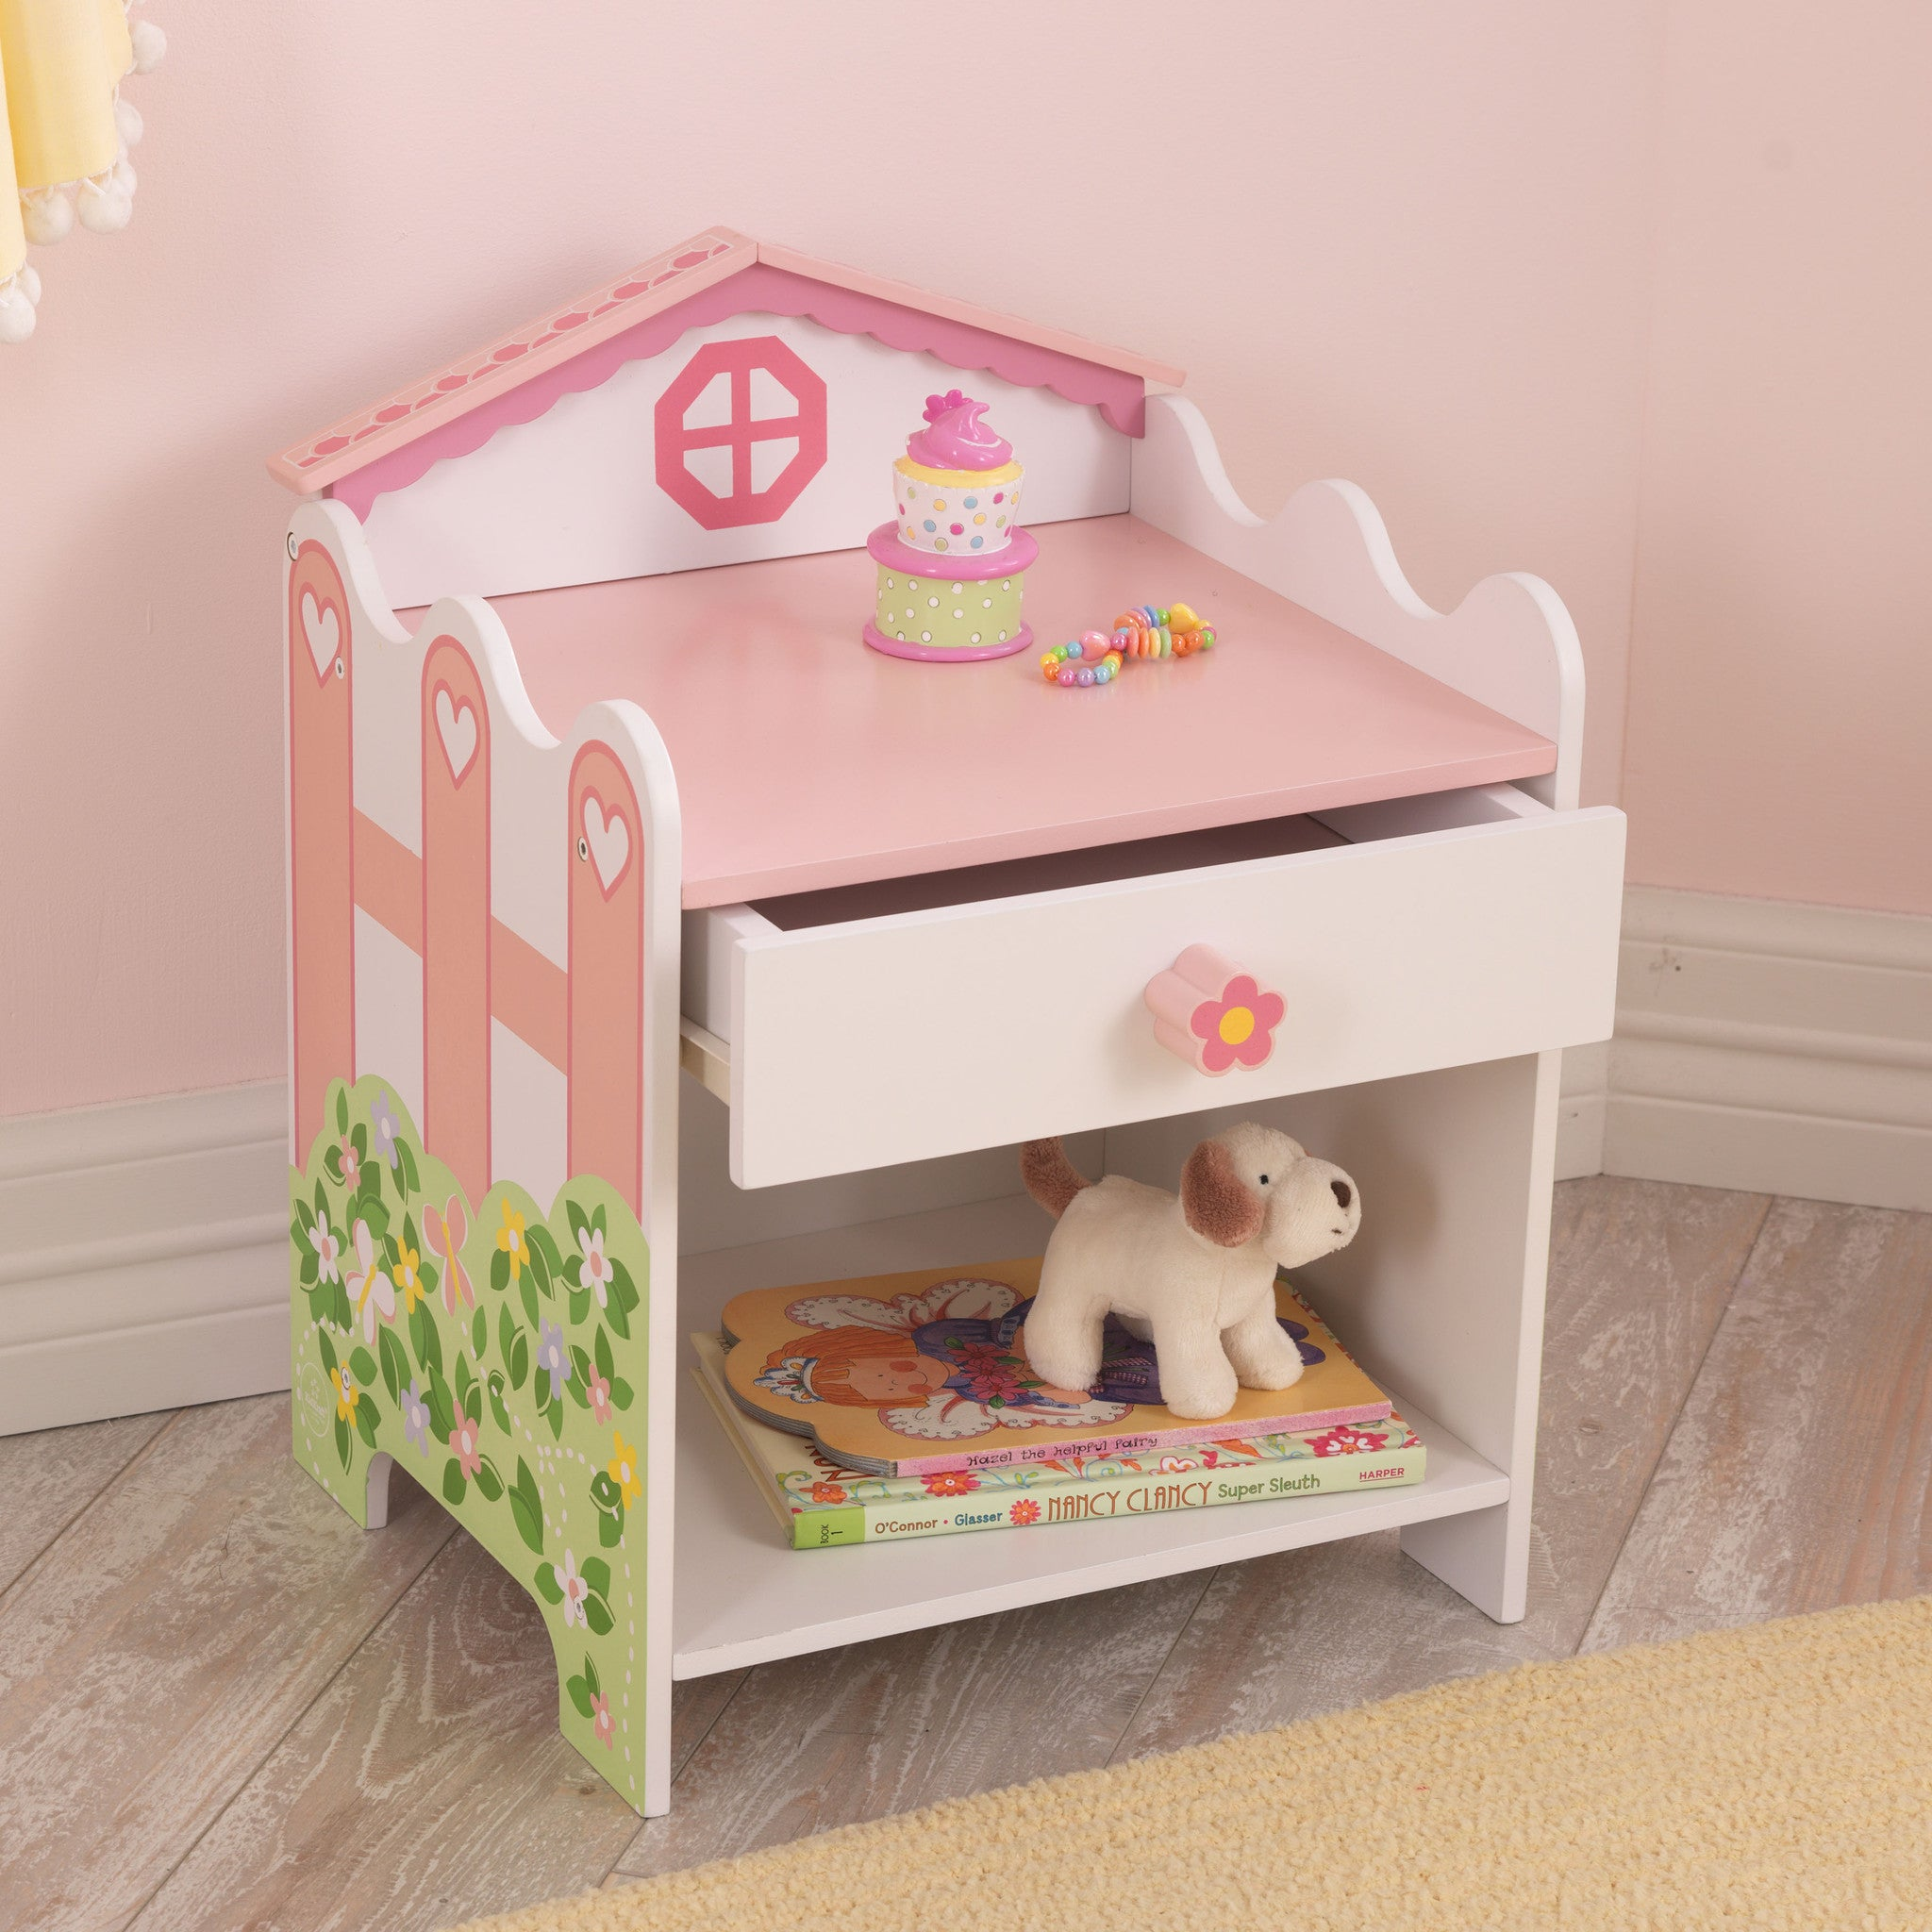 KidKraft Dollhouse Toddler Table